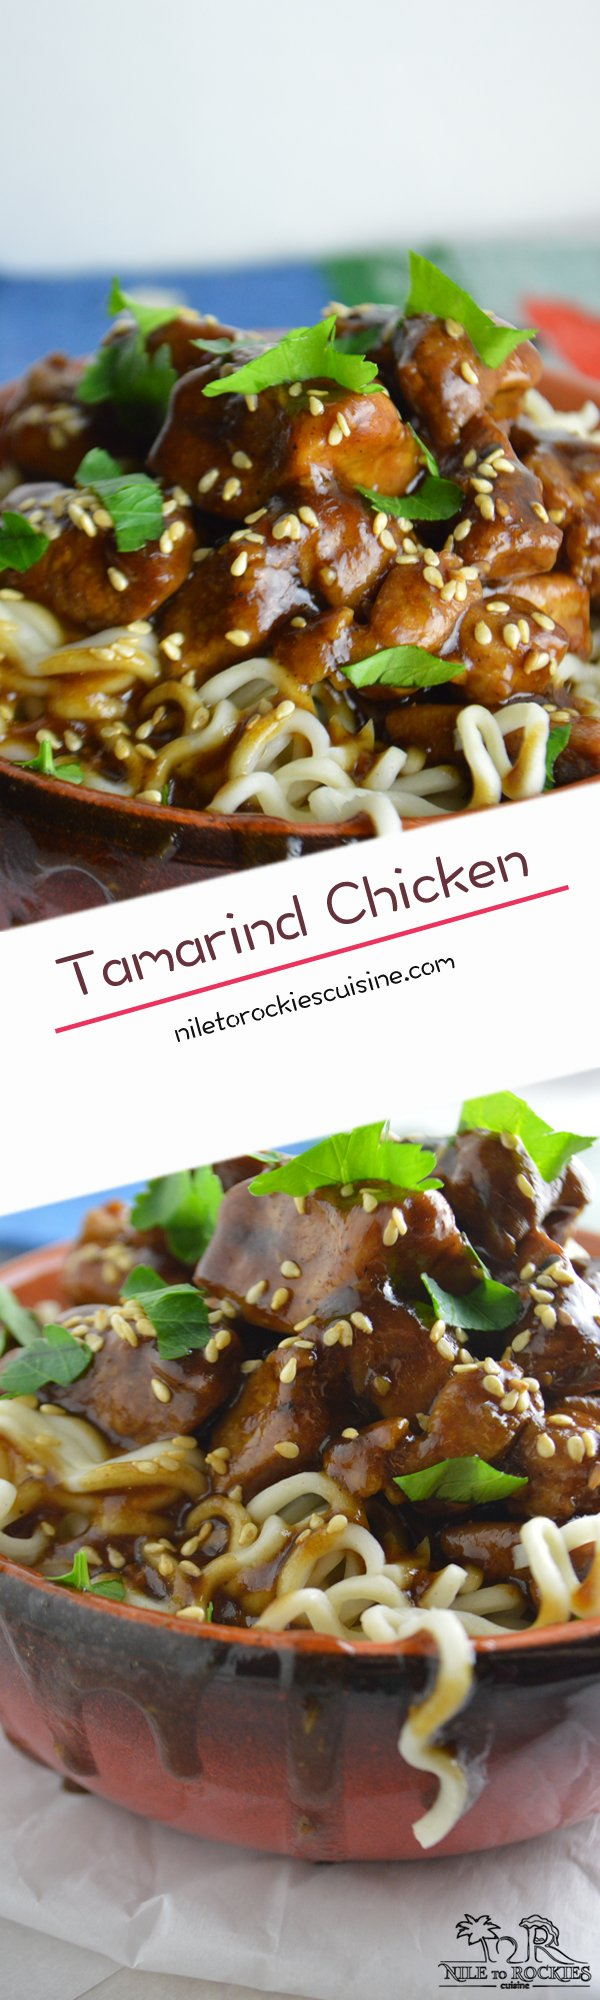 Tamarind recipes